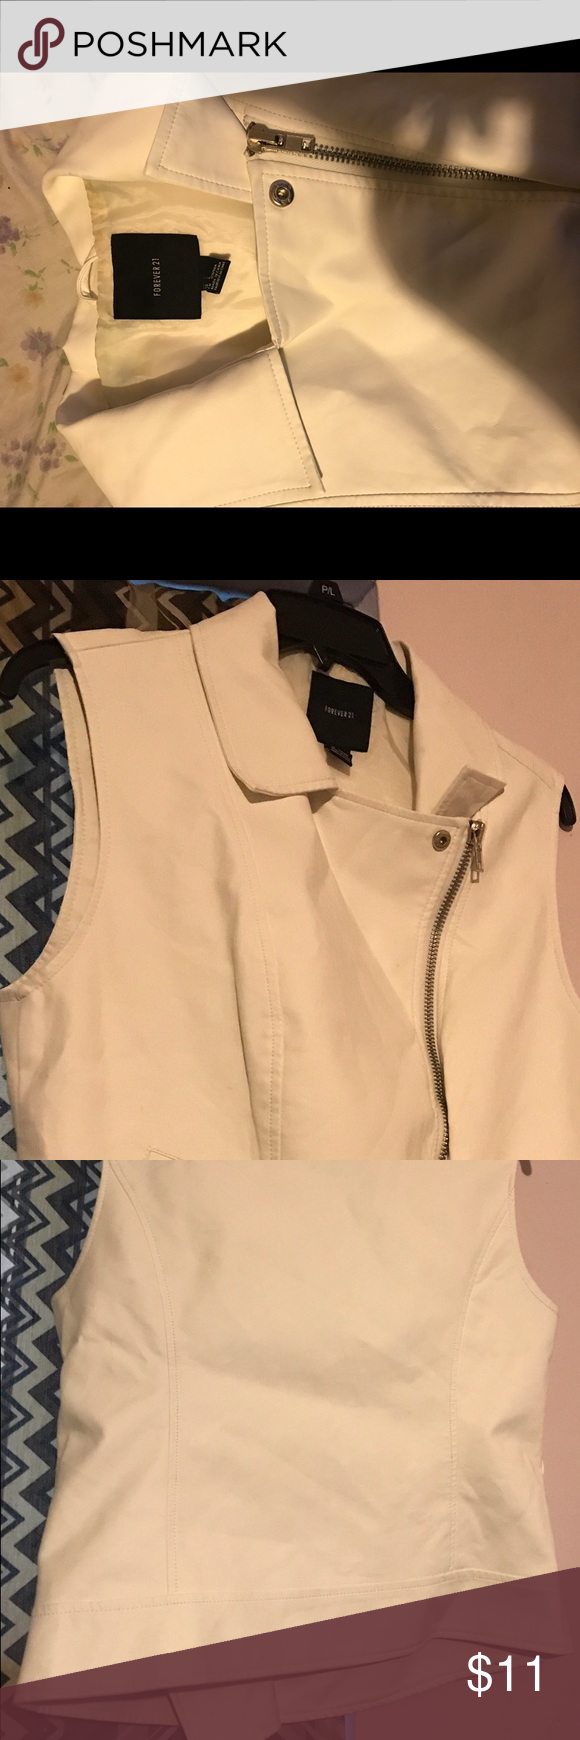 White/cream vest Cute and fashionable white/cream jacket vest that you can pair with jeans and a cute top or on top of a dress. Has a stain on the neck part where inner tag is. Worn twice but in ok condition. Selling for $11 but will accept offers but no low balling. Jackets & Coats Vests